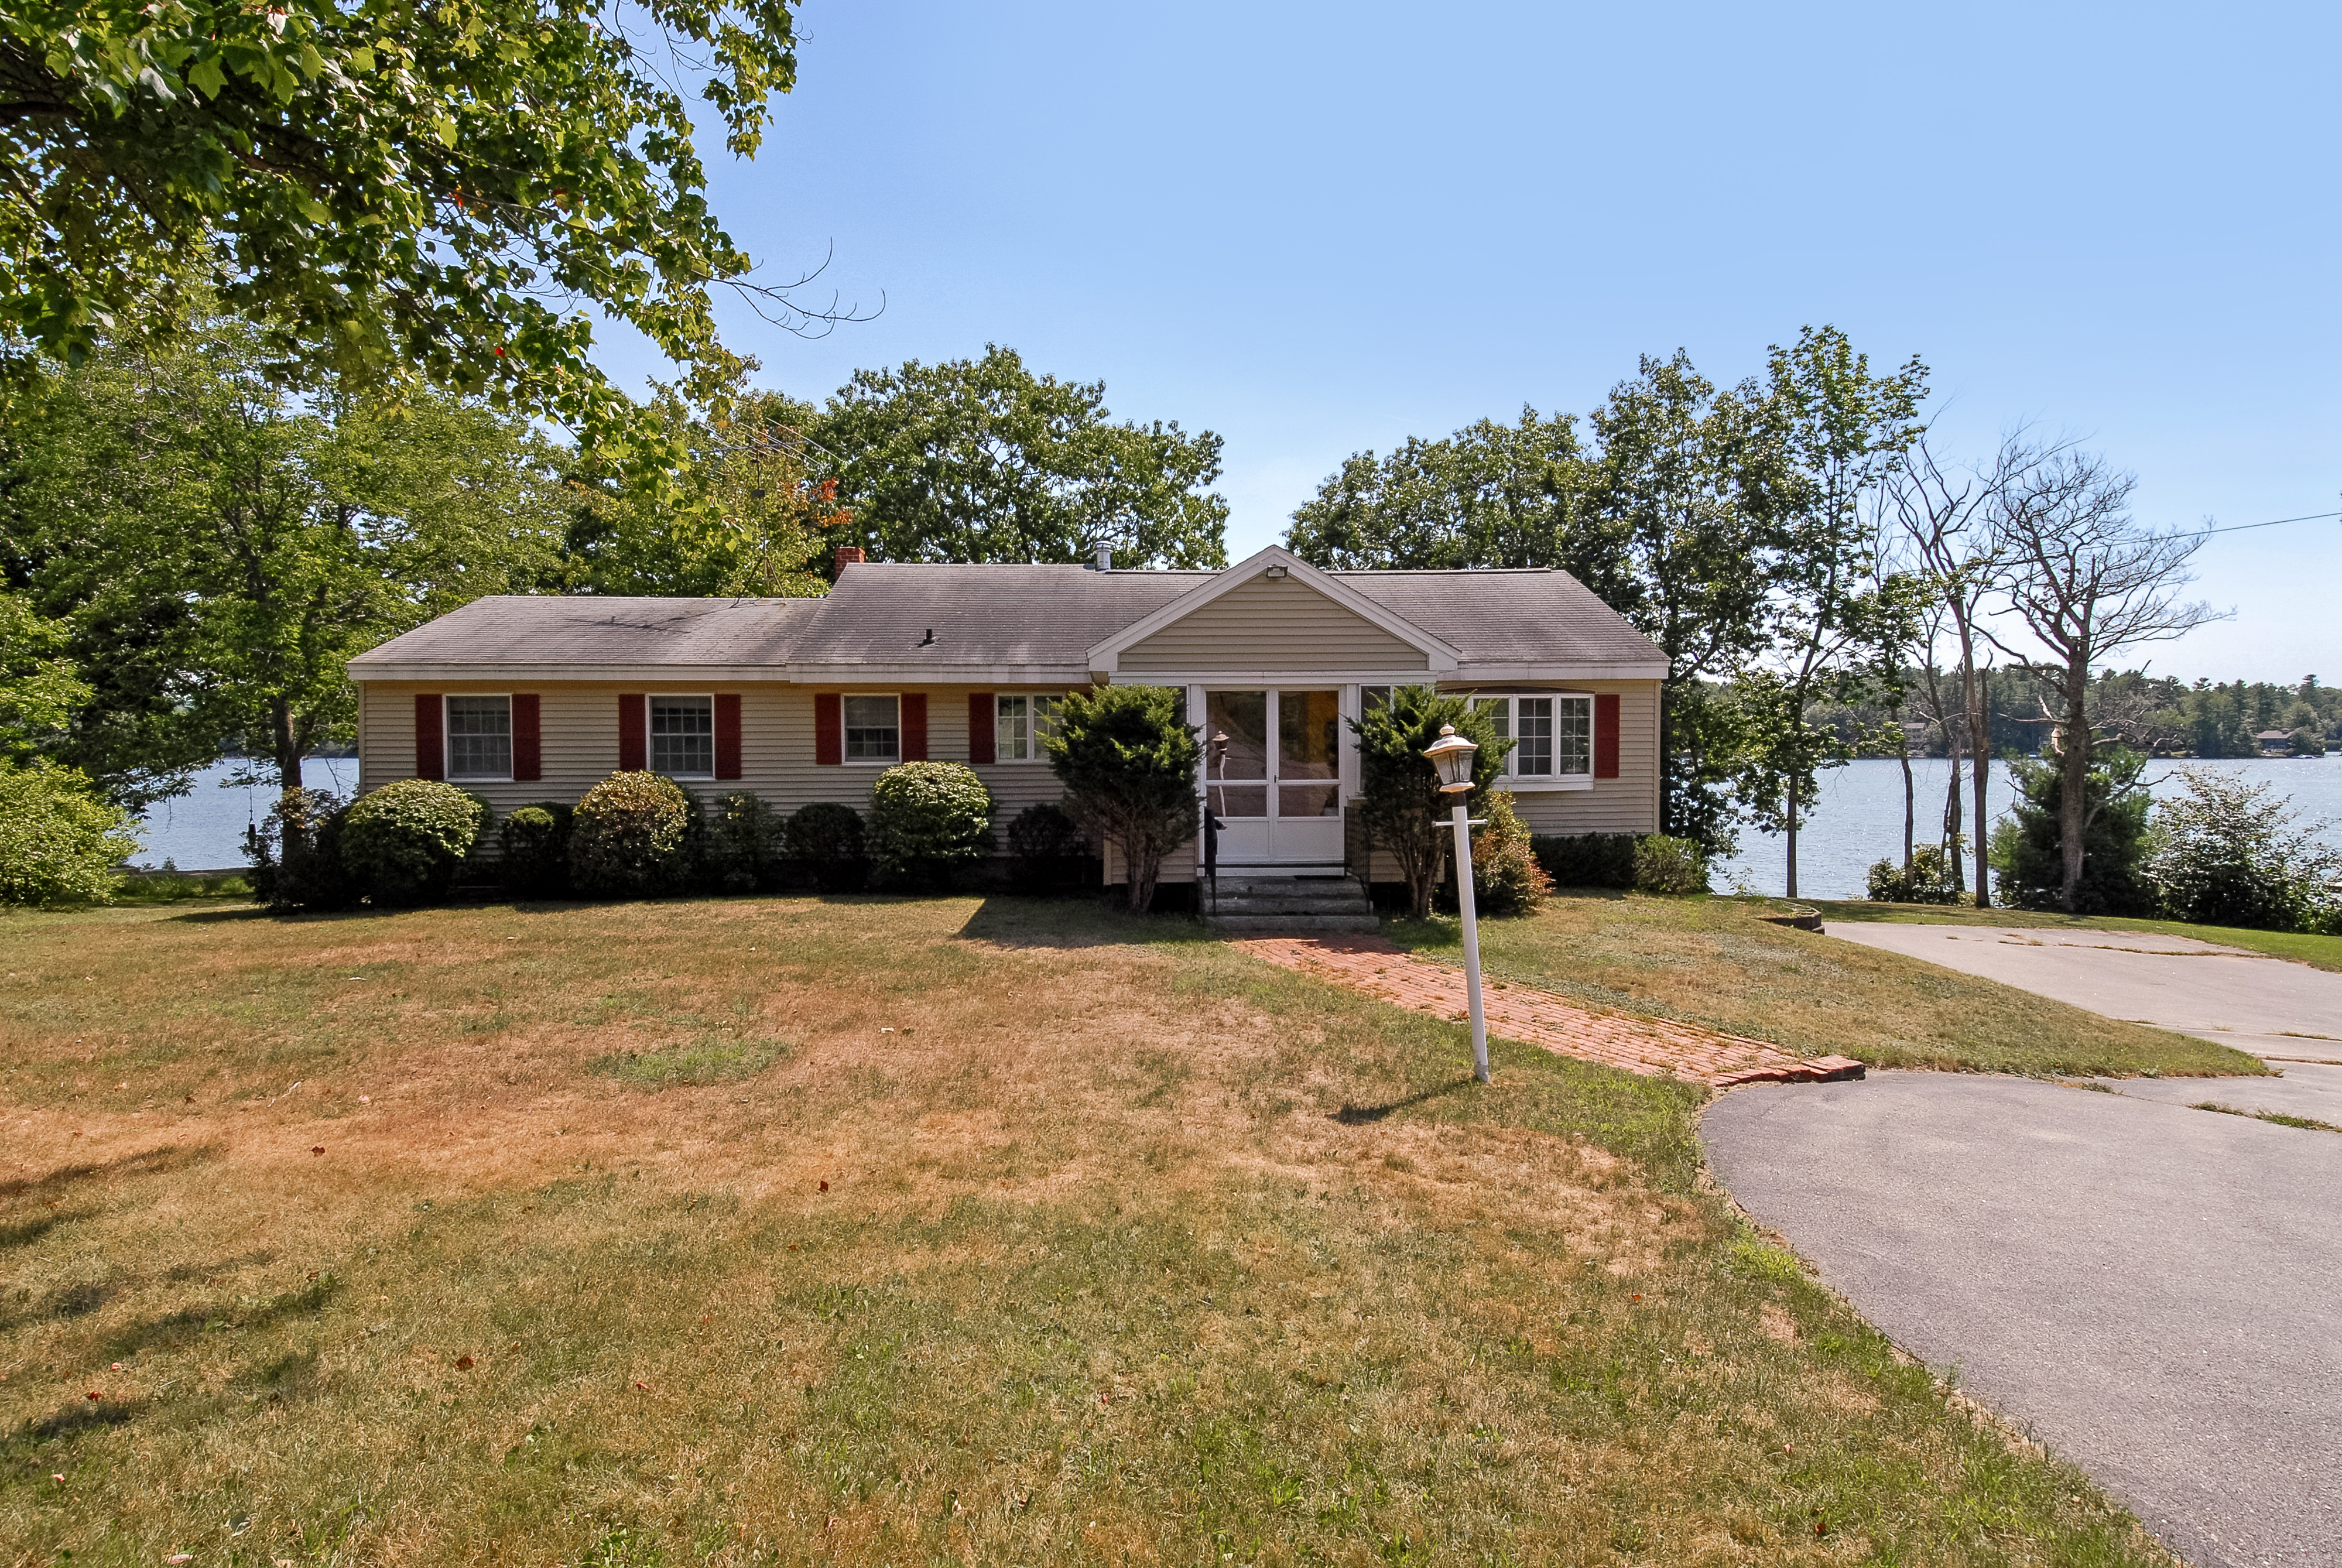 Lake Ossipee Real estate for sale - ossipee lakefront home